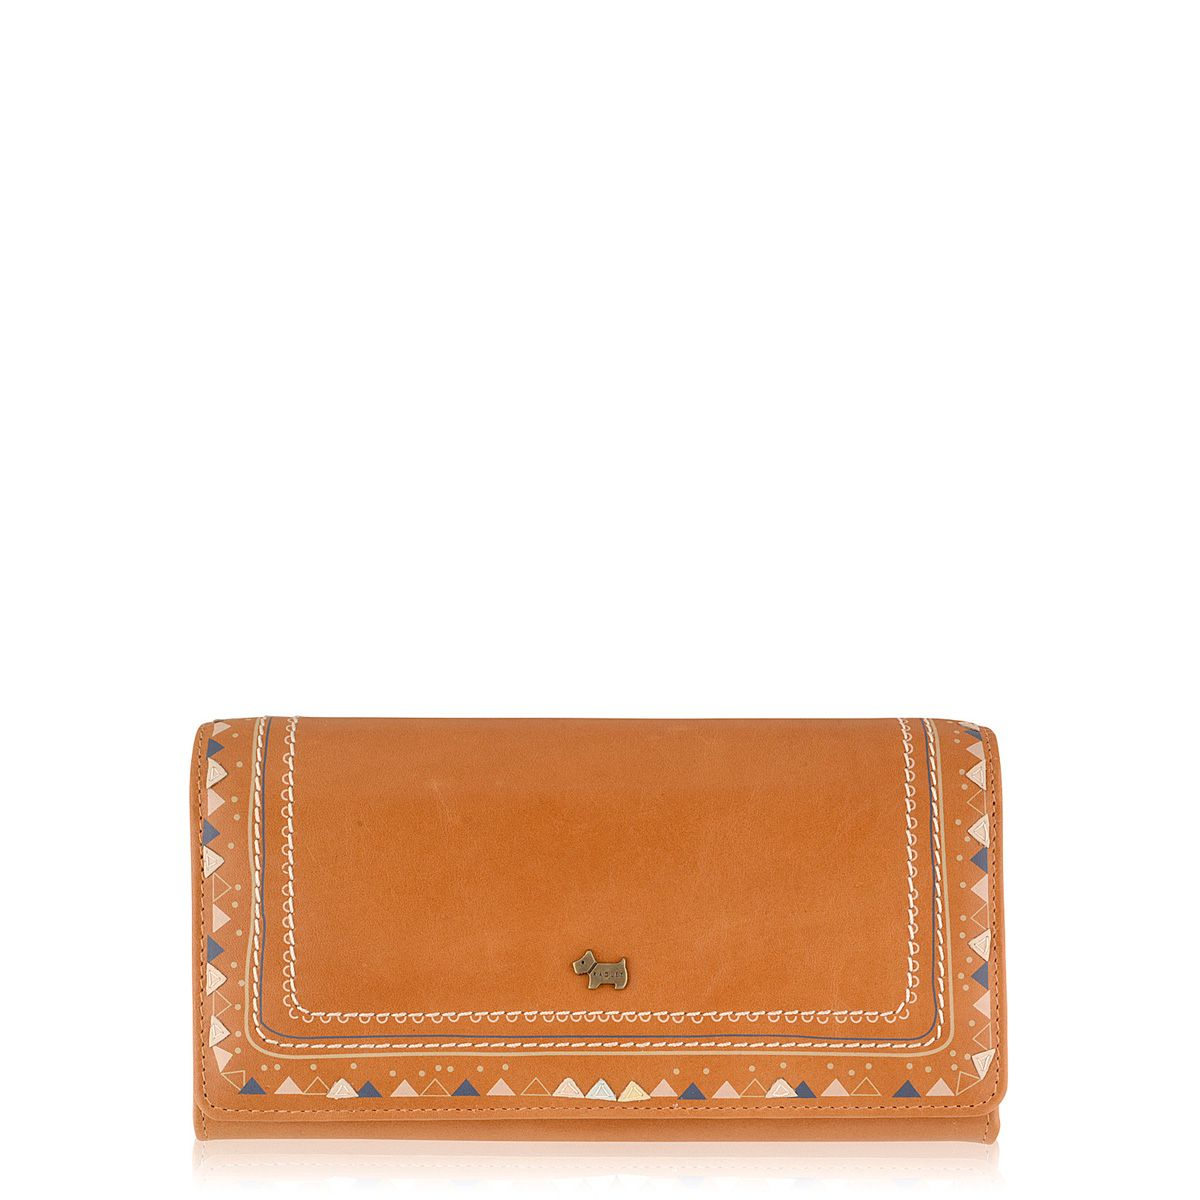 Tan large flapover purse